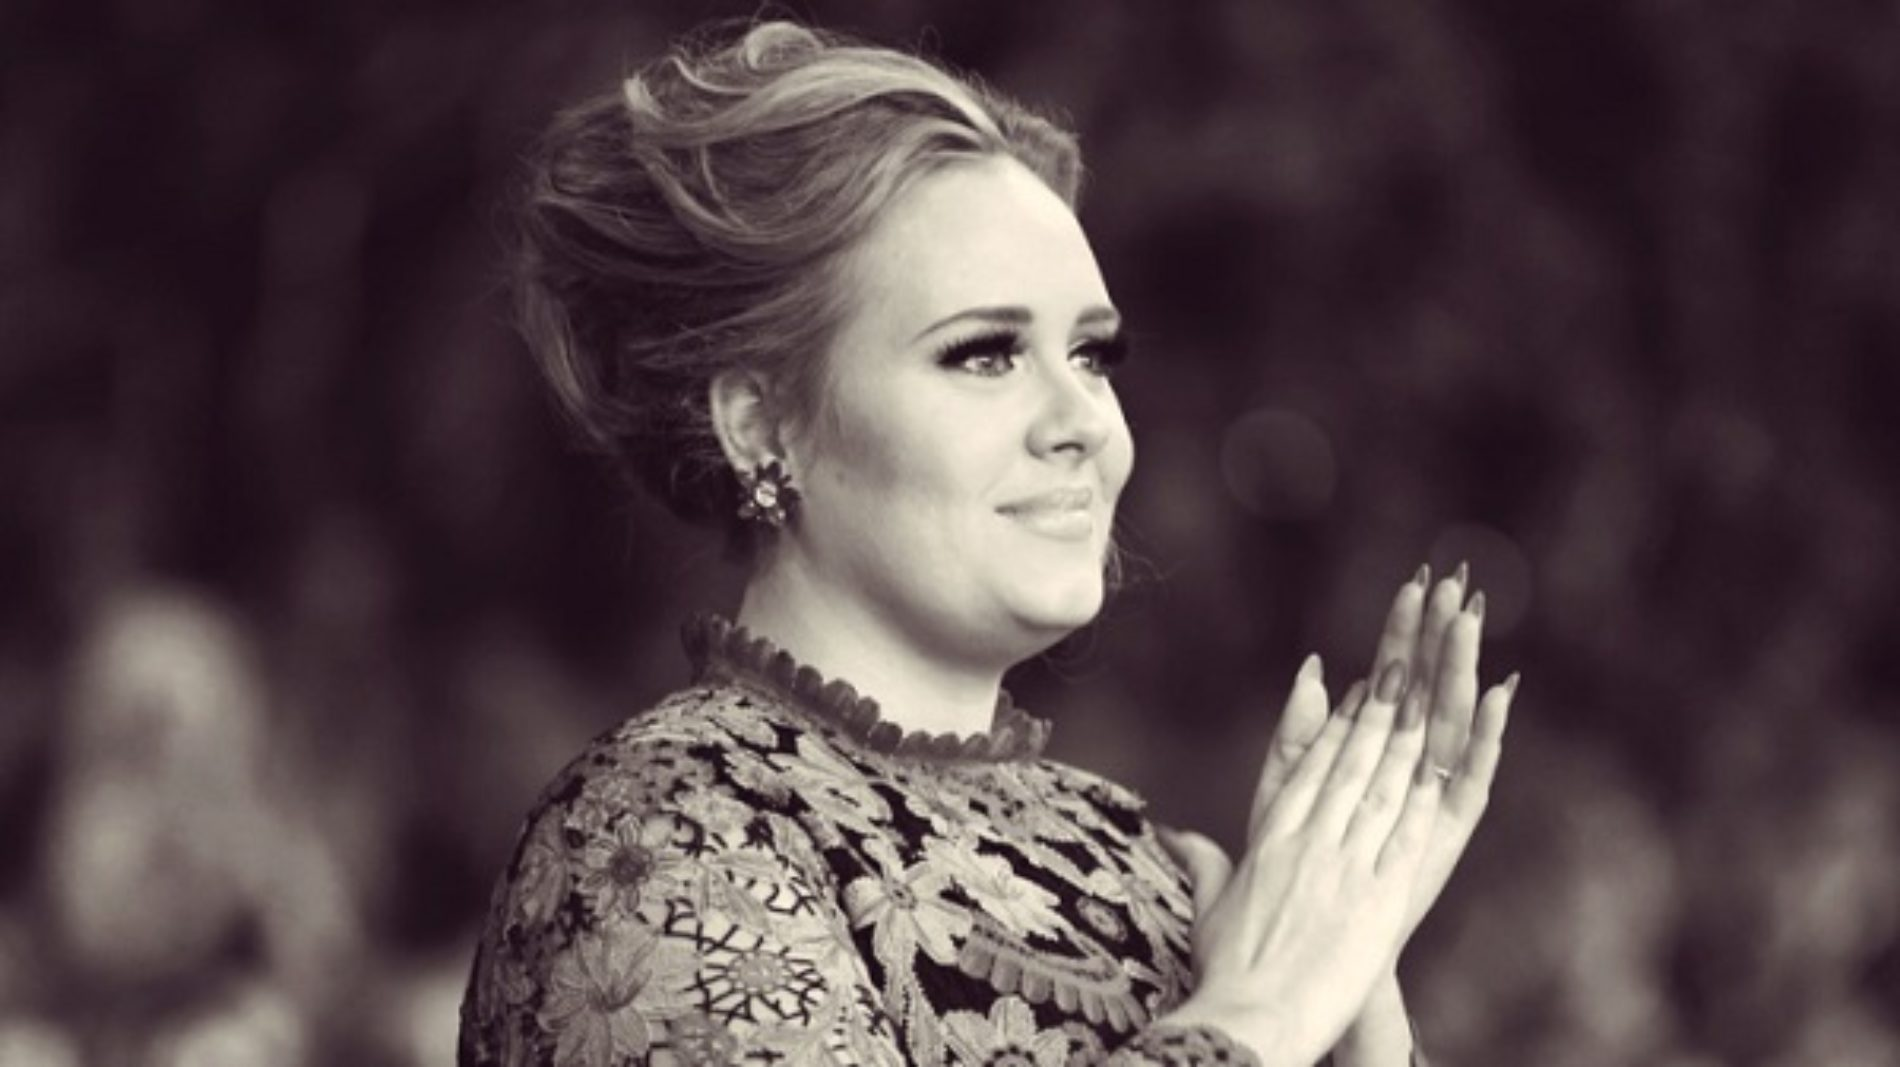 Adele Speaks About Her Reaction If Her Son Is Gay